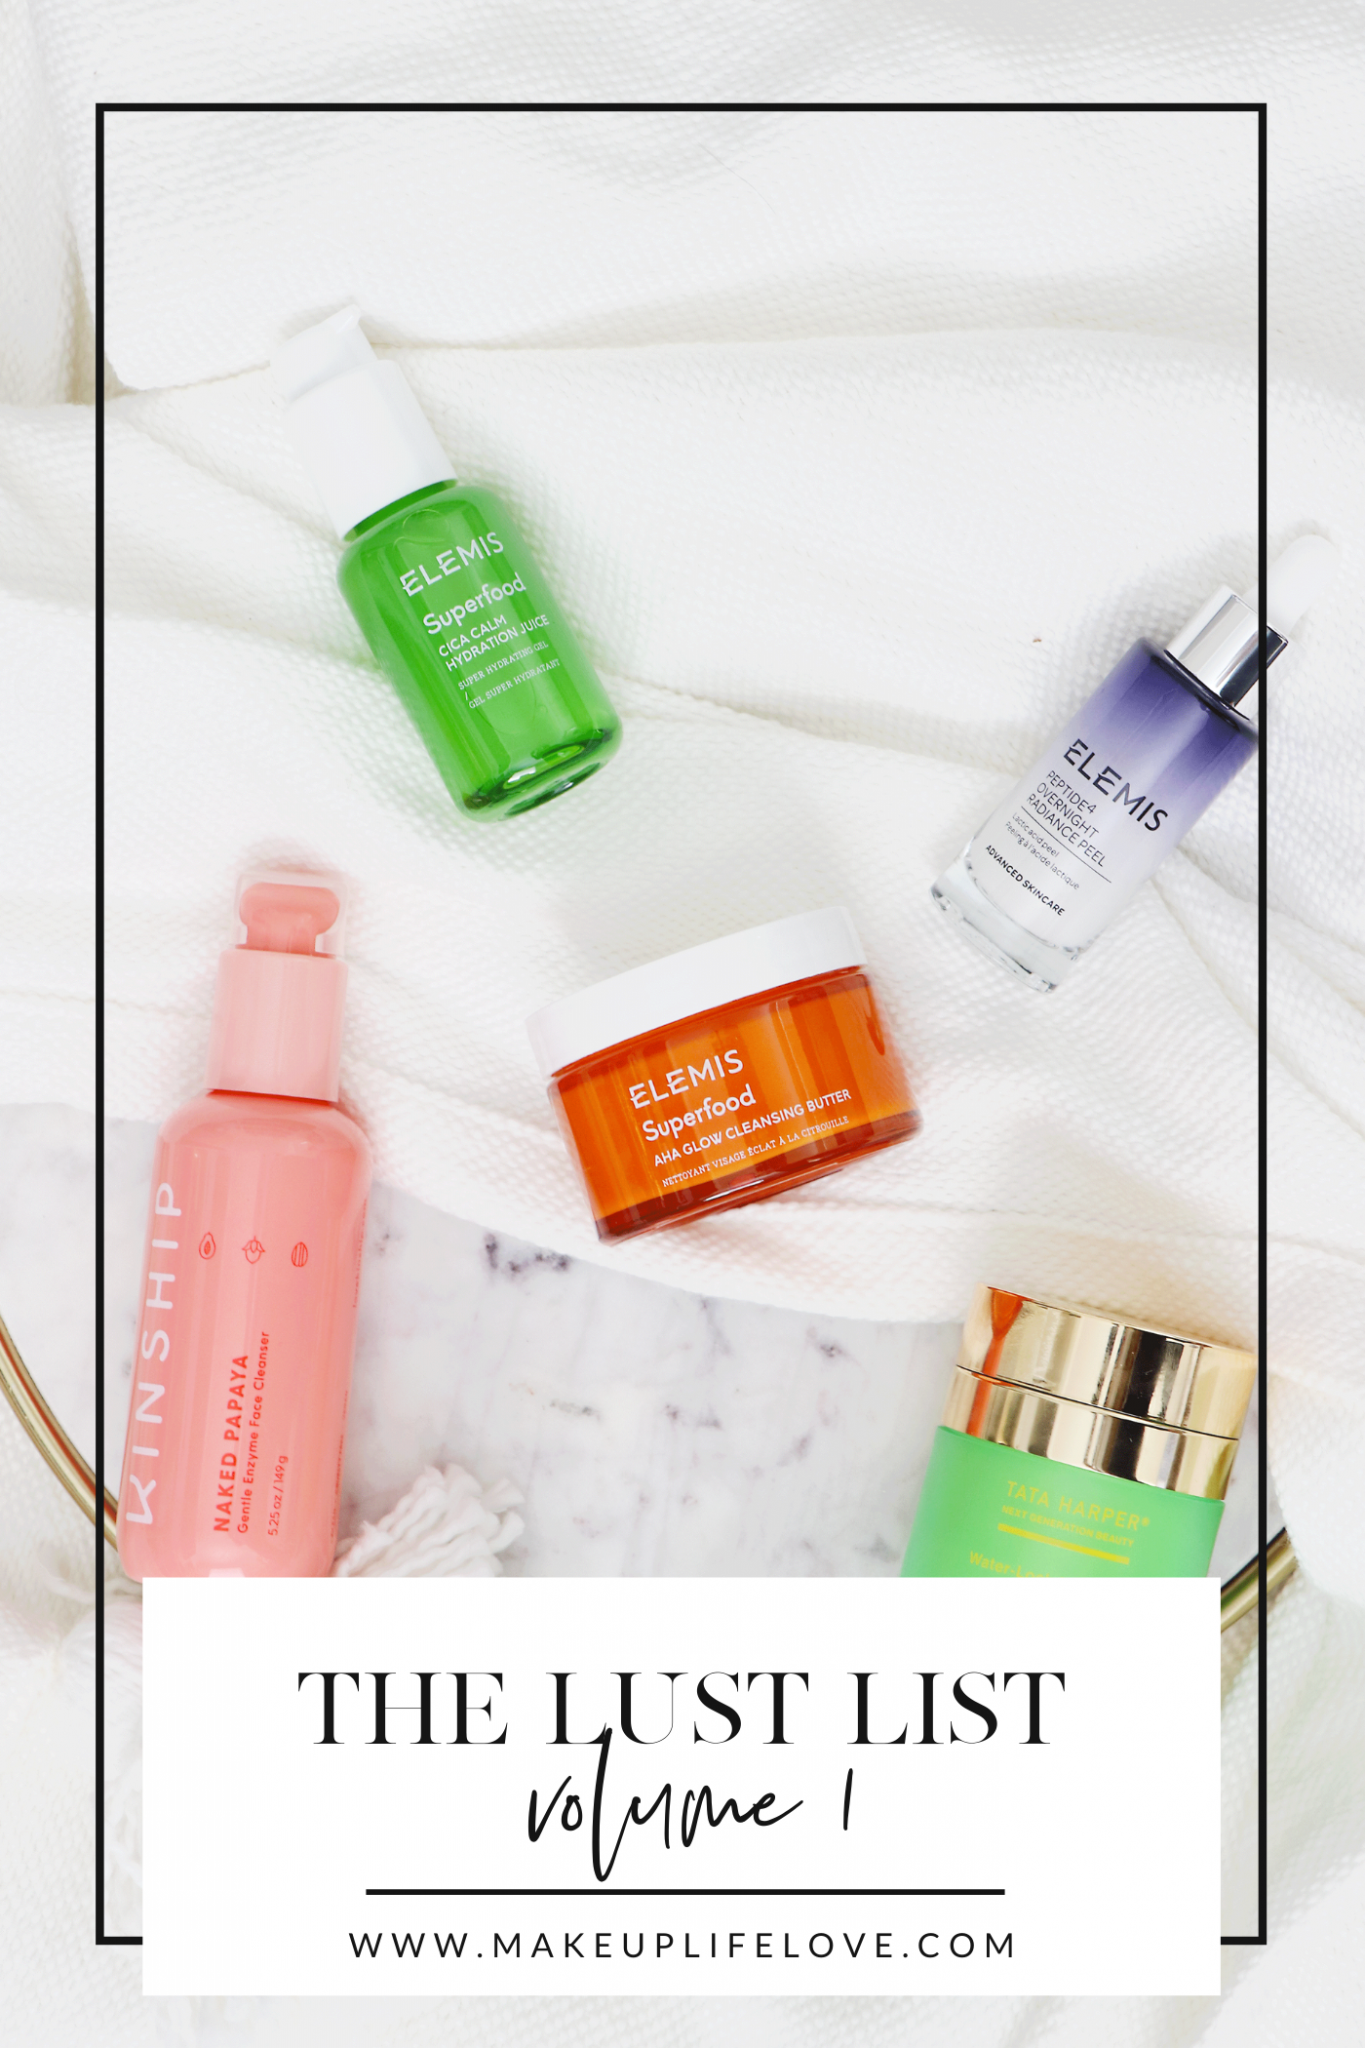 What's on your beauty lust list this month? Los Angeles blogger Jamie Lewis is sharing her current monthly beauty lust list HERE!